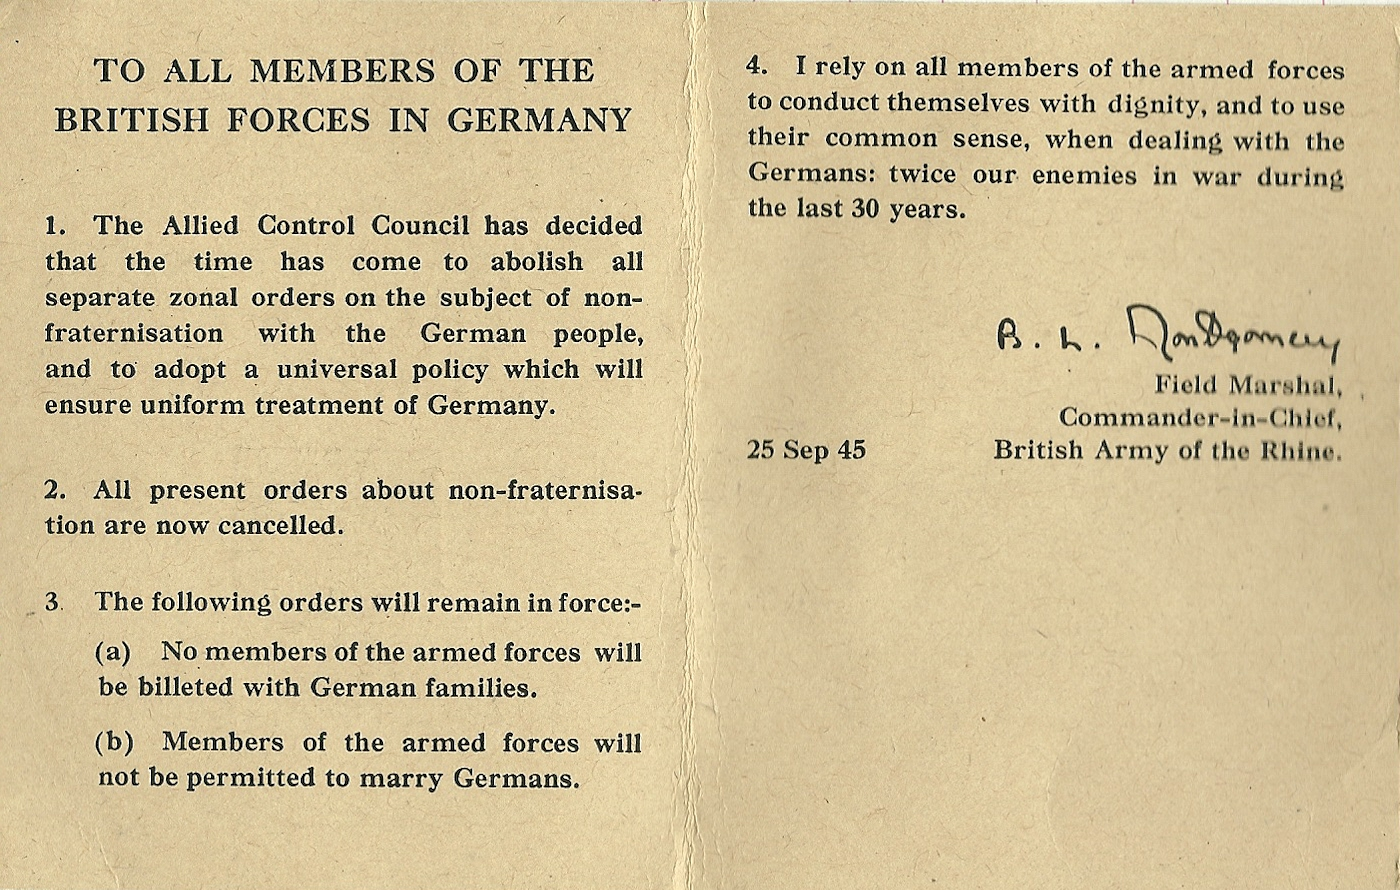 Memorabilia. Non Fraternisation. Germany 1945, pages 2, 3.